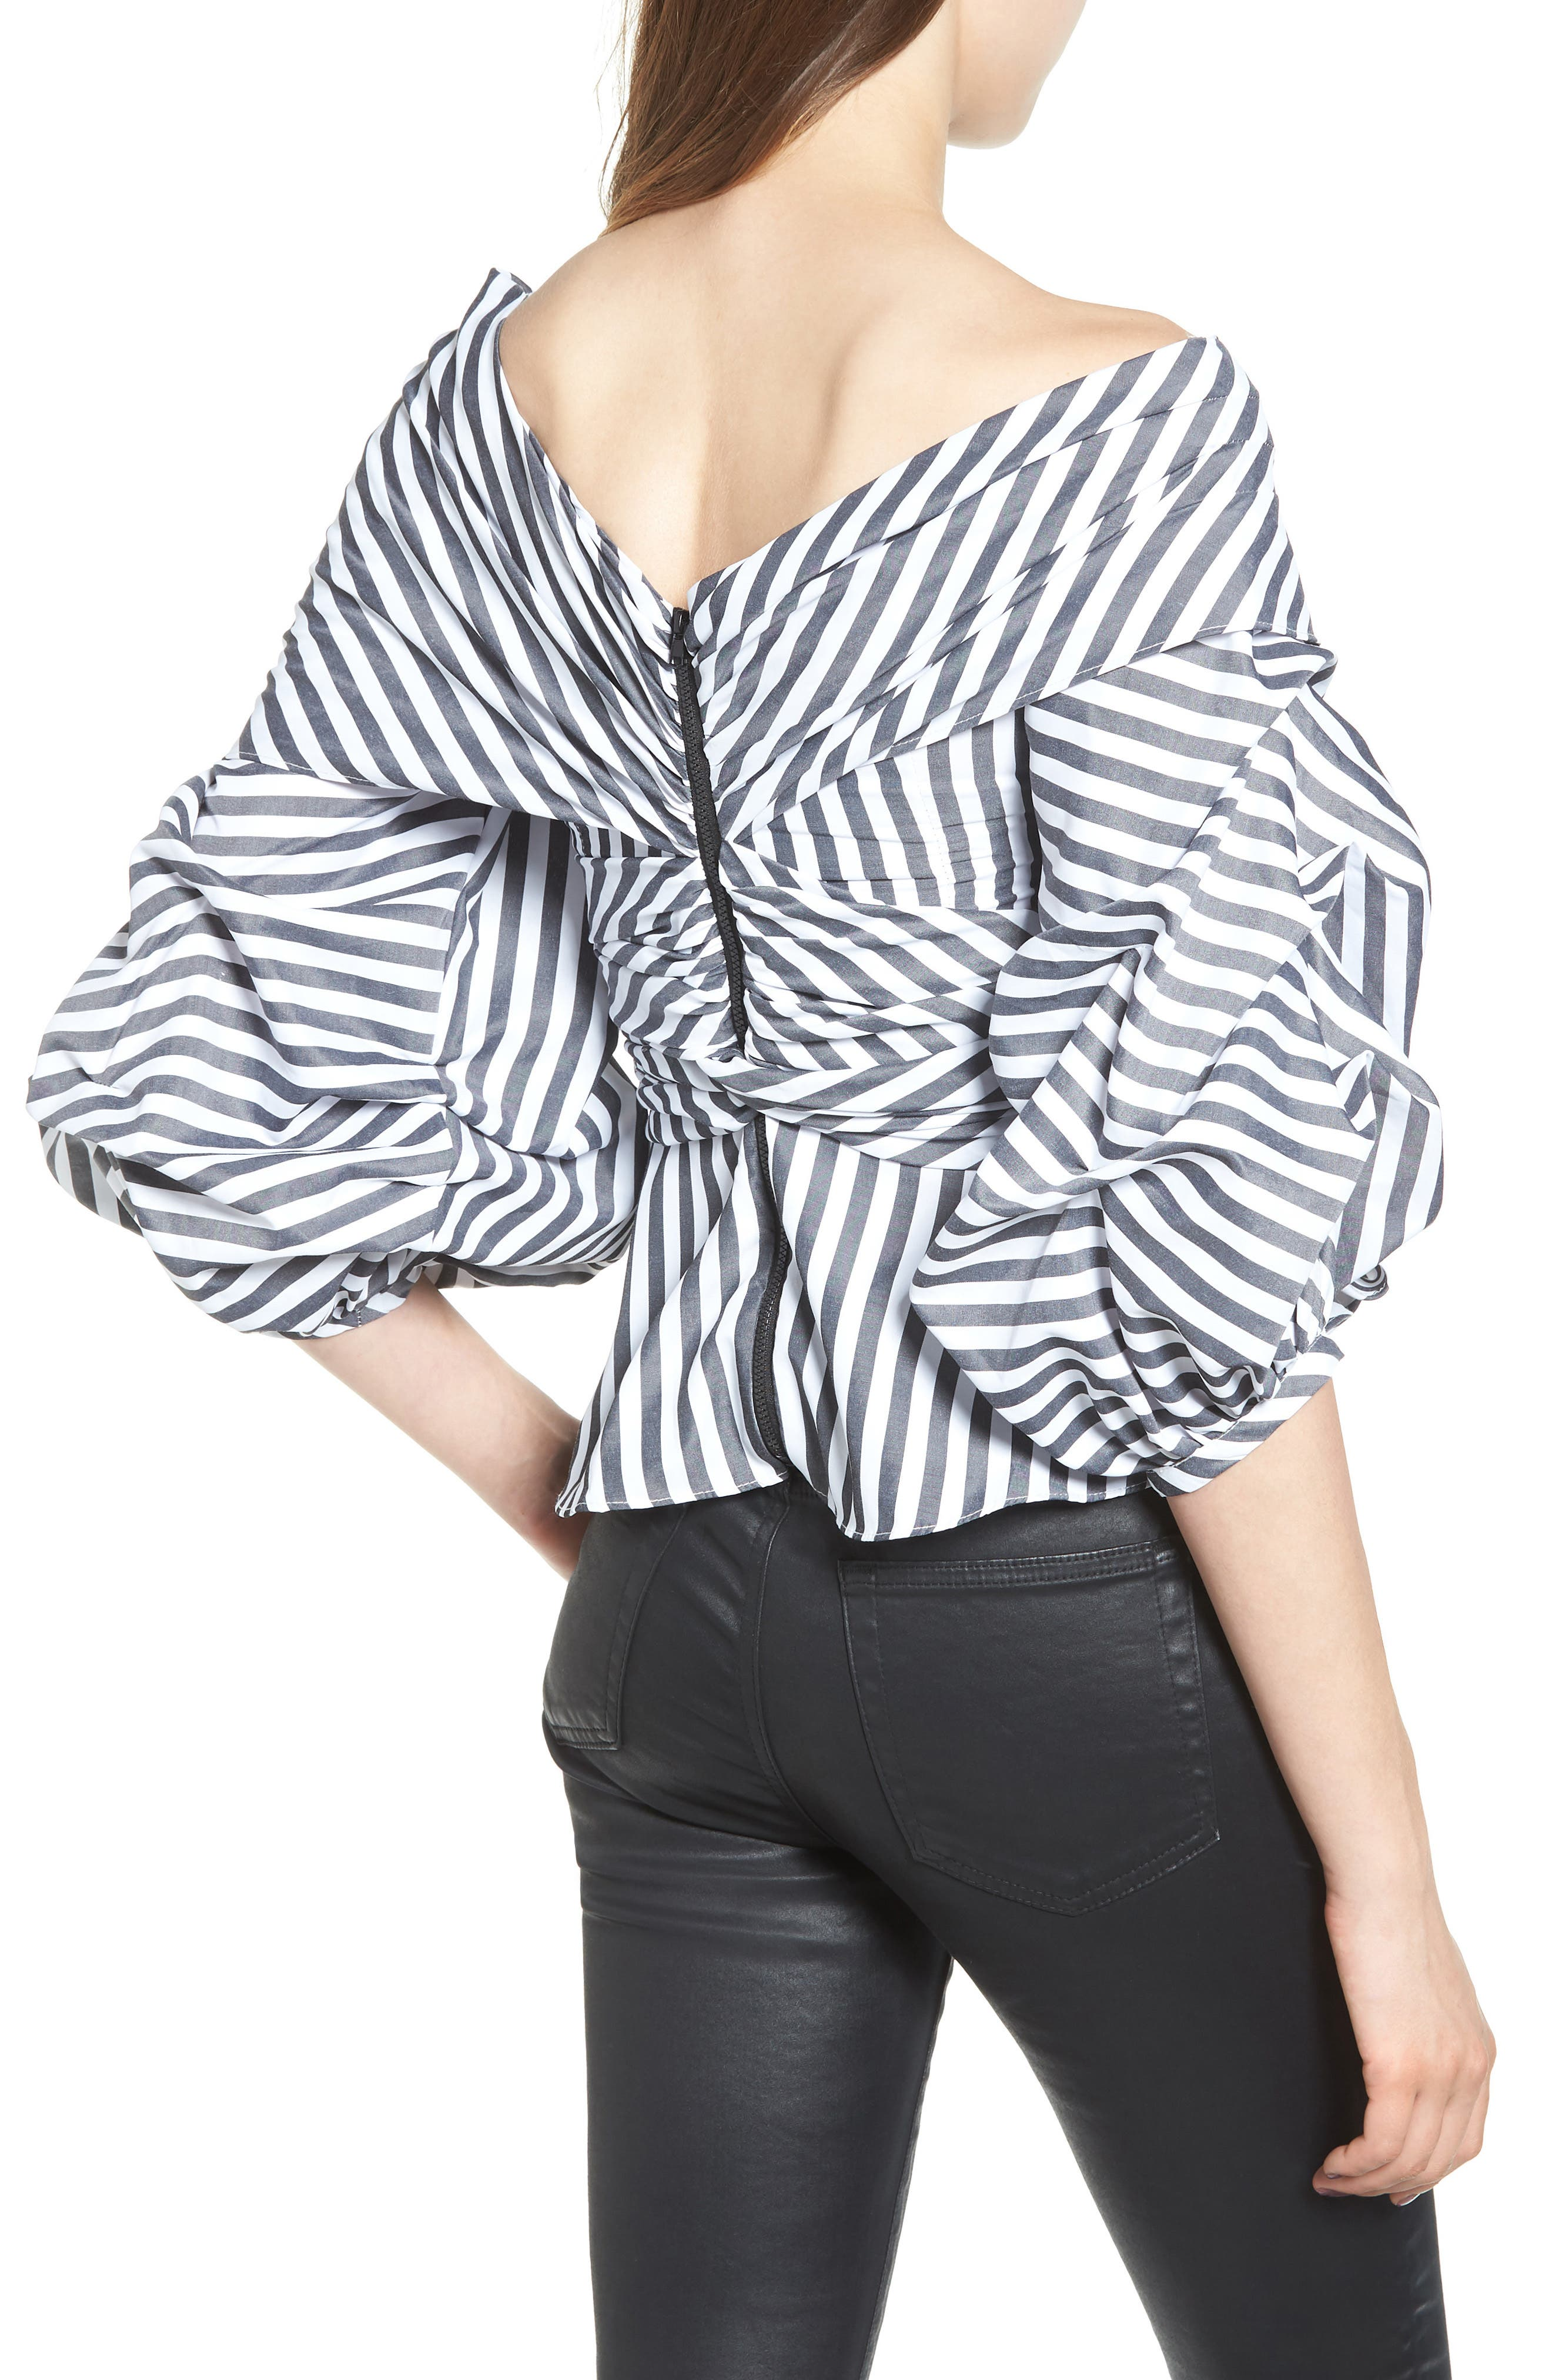 The Lovers Lane Top,                             Alternate thumbnail 2, color,                             Striped Charcoal